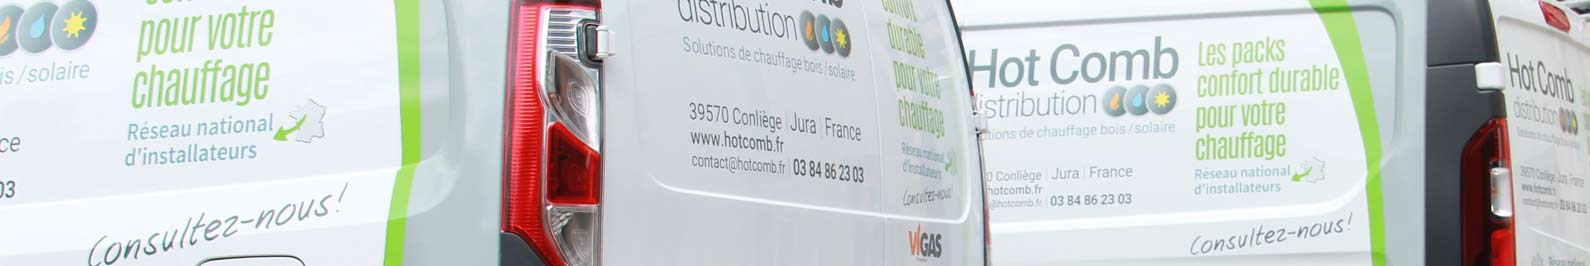 La force d'intervention HotComb Distribution